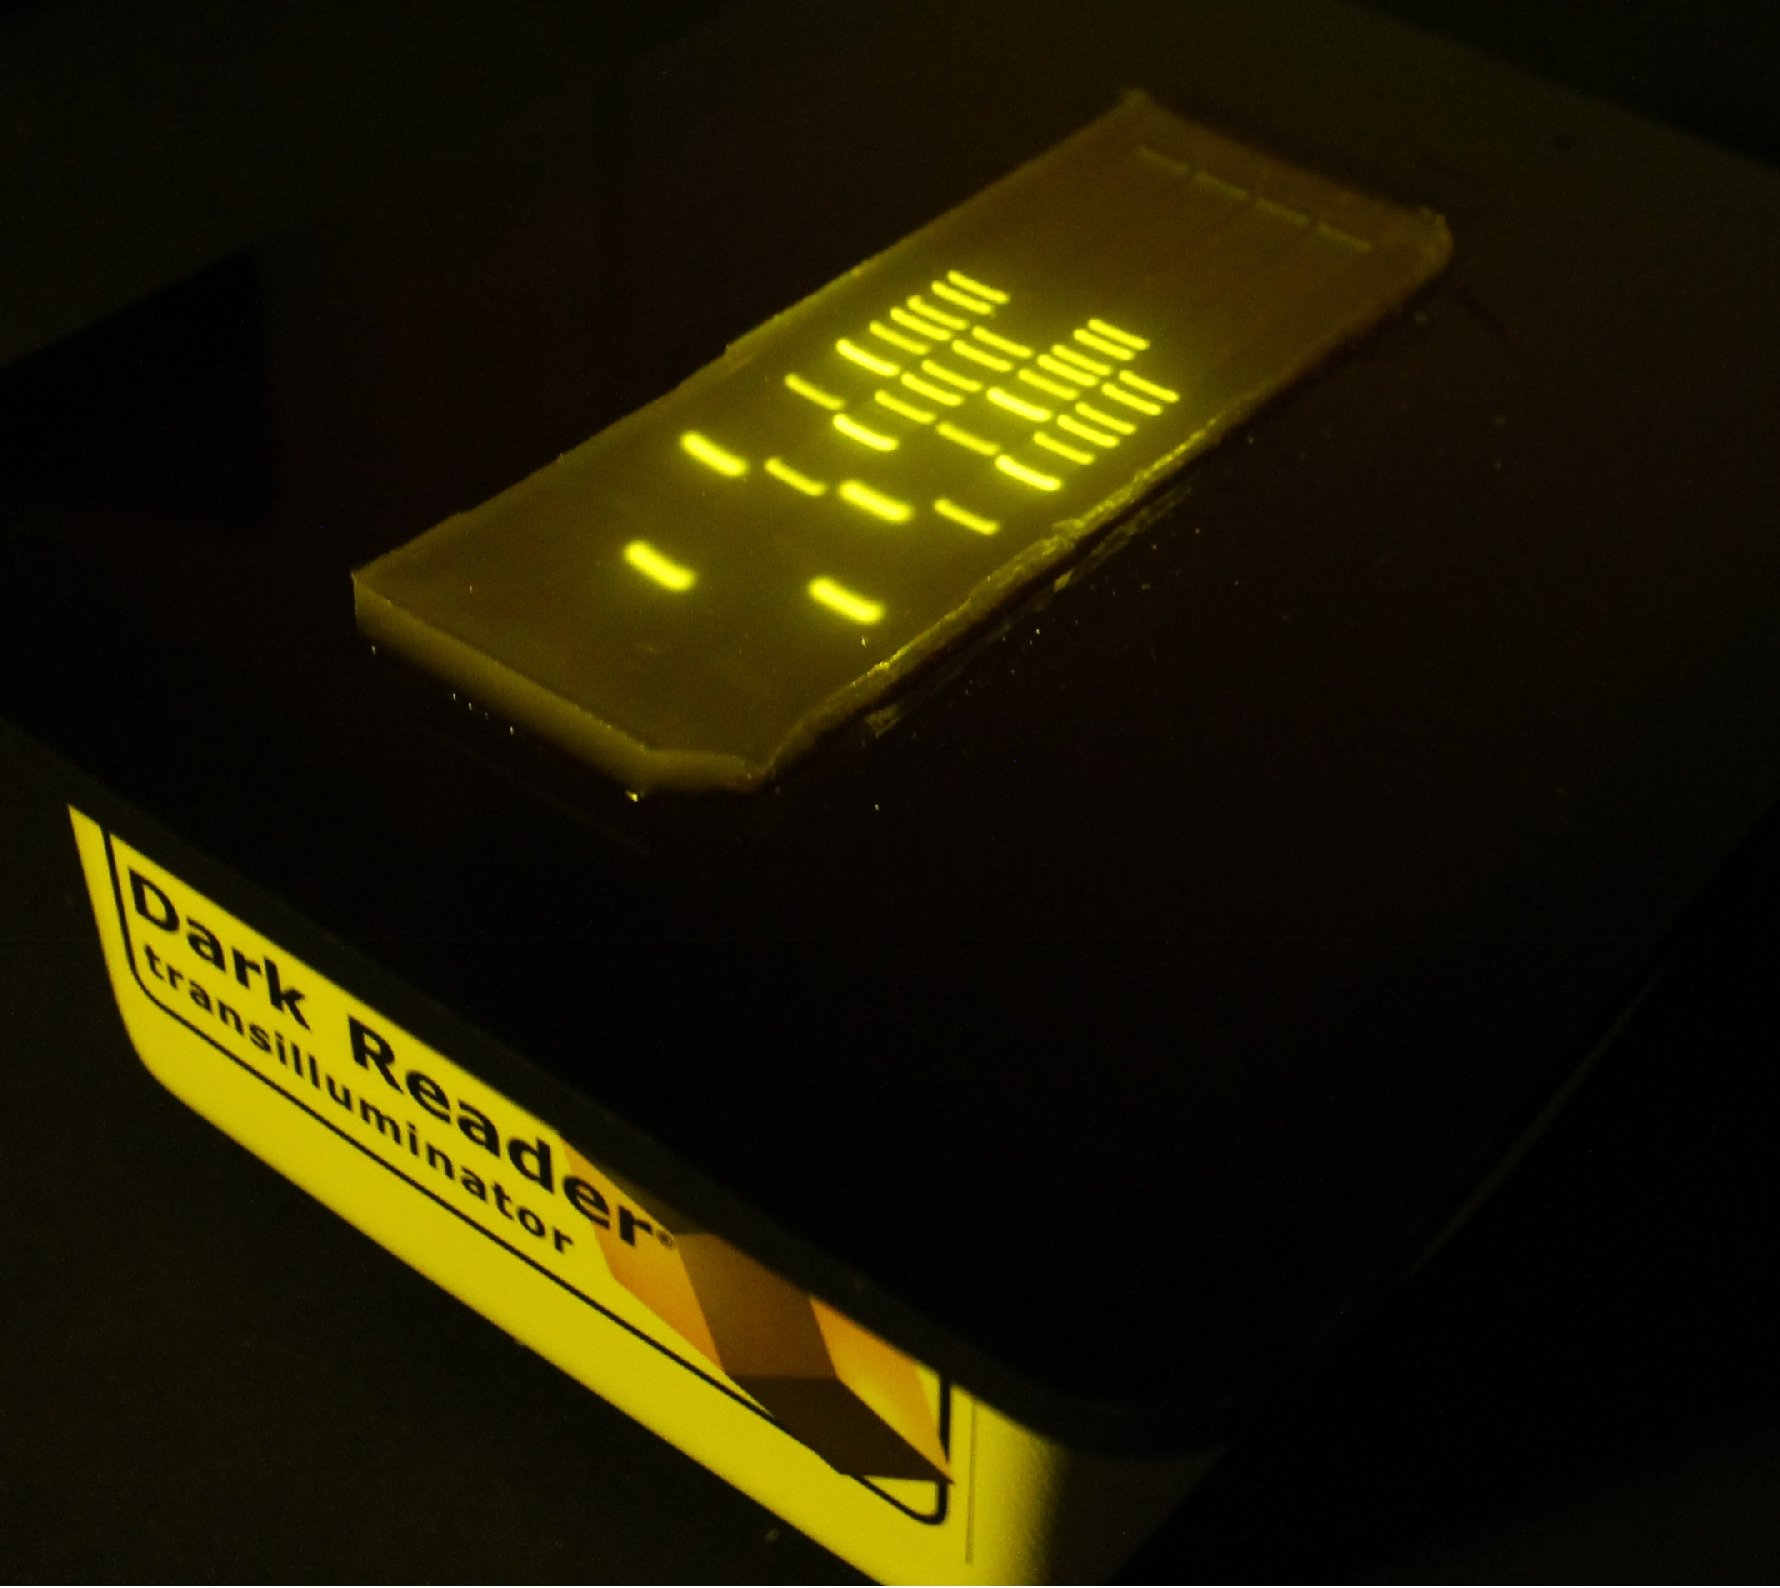 Image of a DNA gel on top of a transilluminator